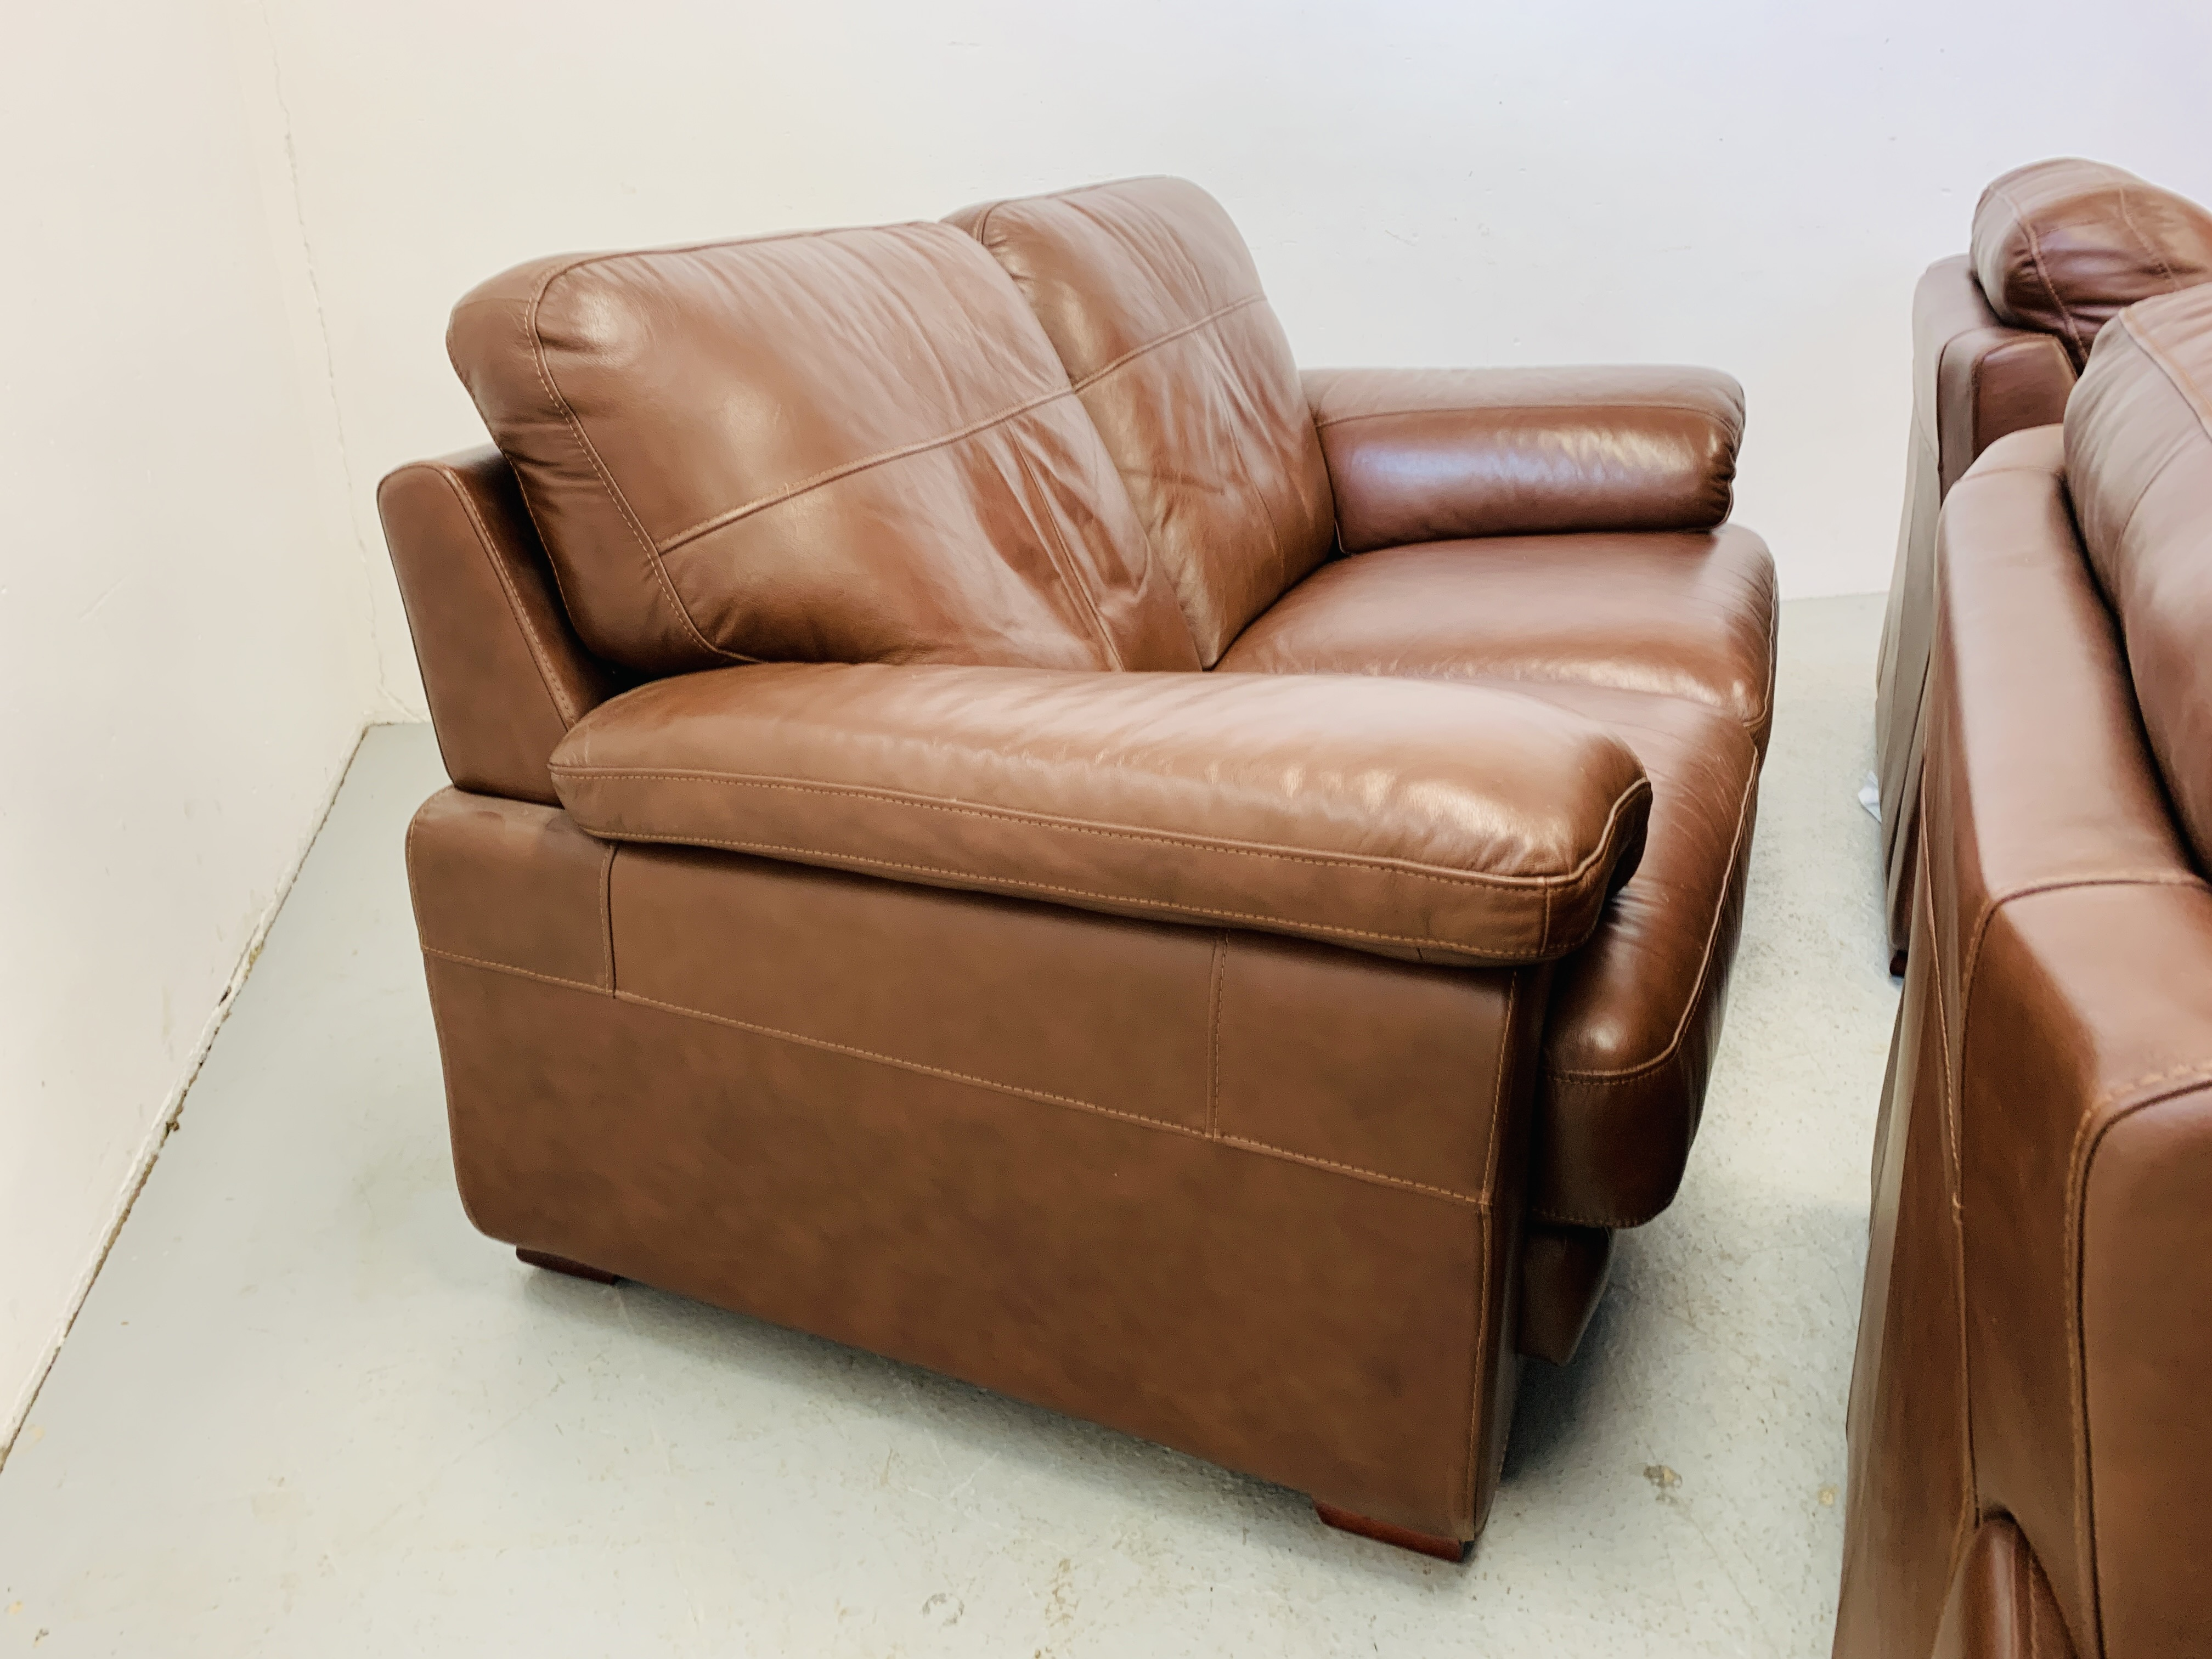 A GOOD QUALITY TAN LEATHER THREE PIECE LOUNGE SUITE WITH MATCHING POUFFE - Image 12 of 17